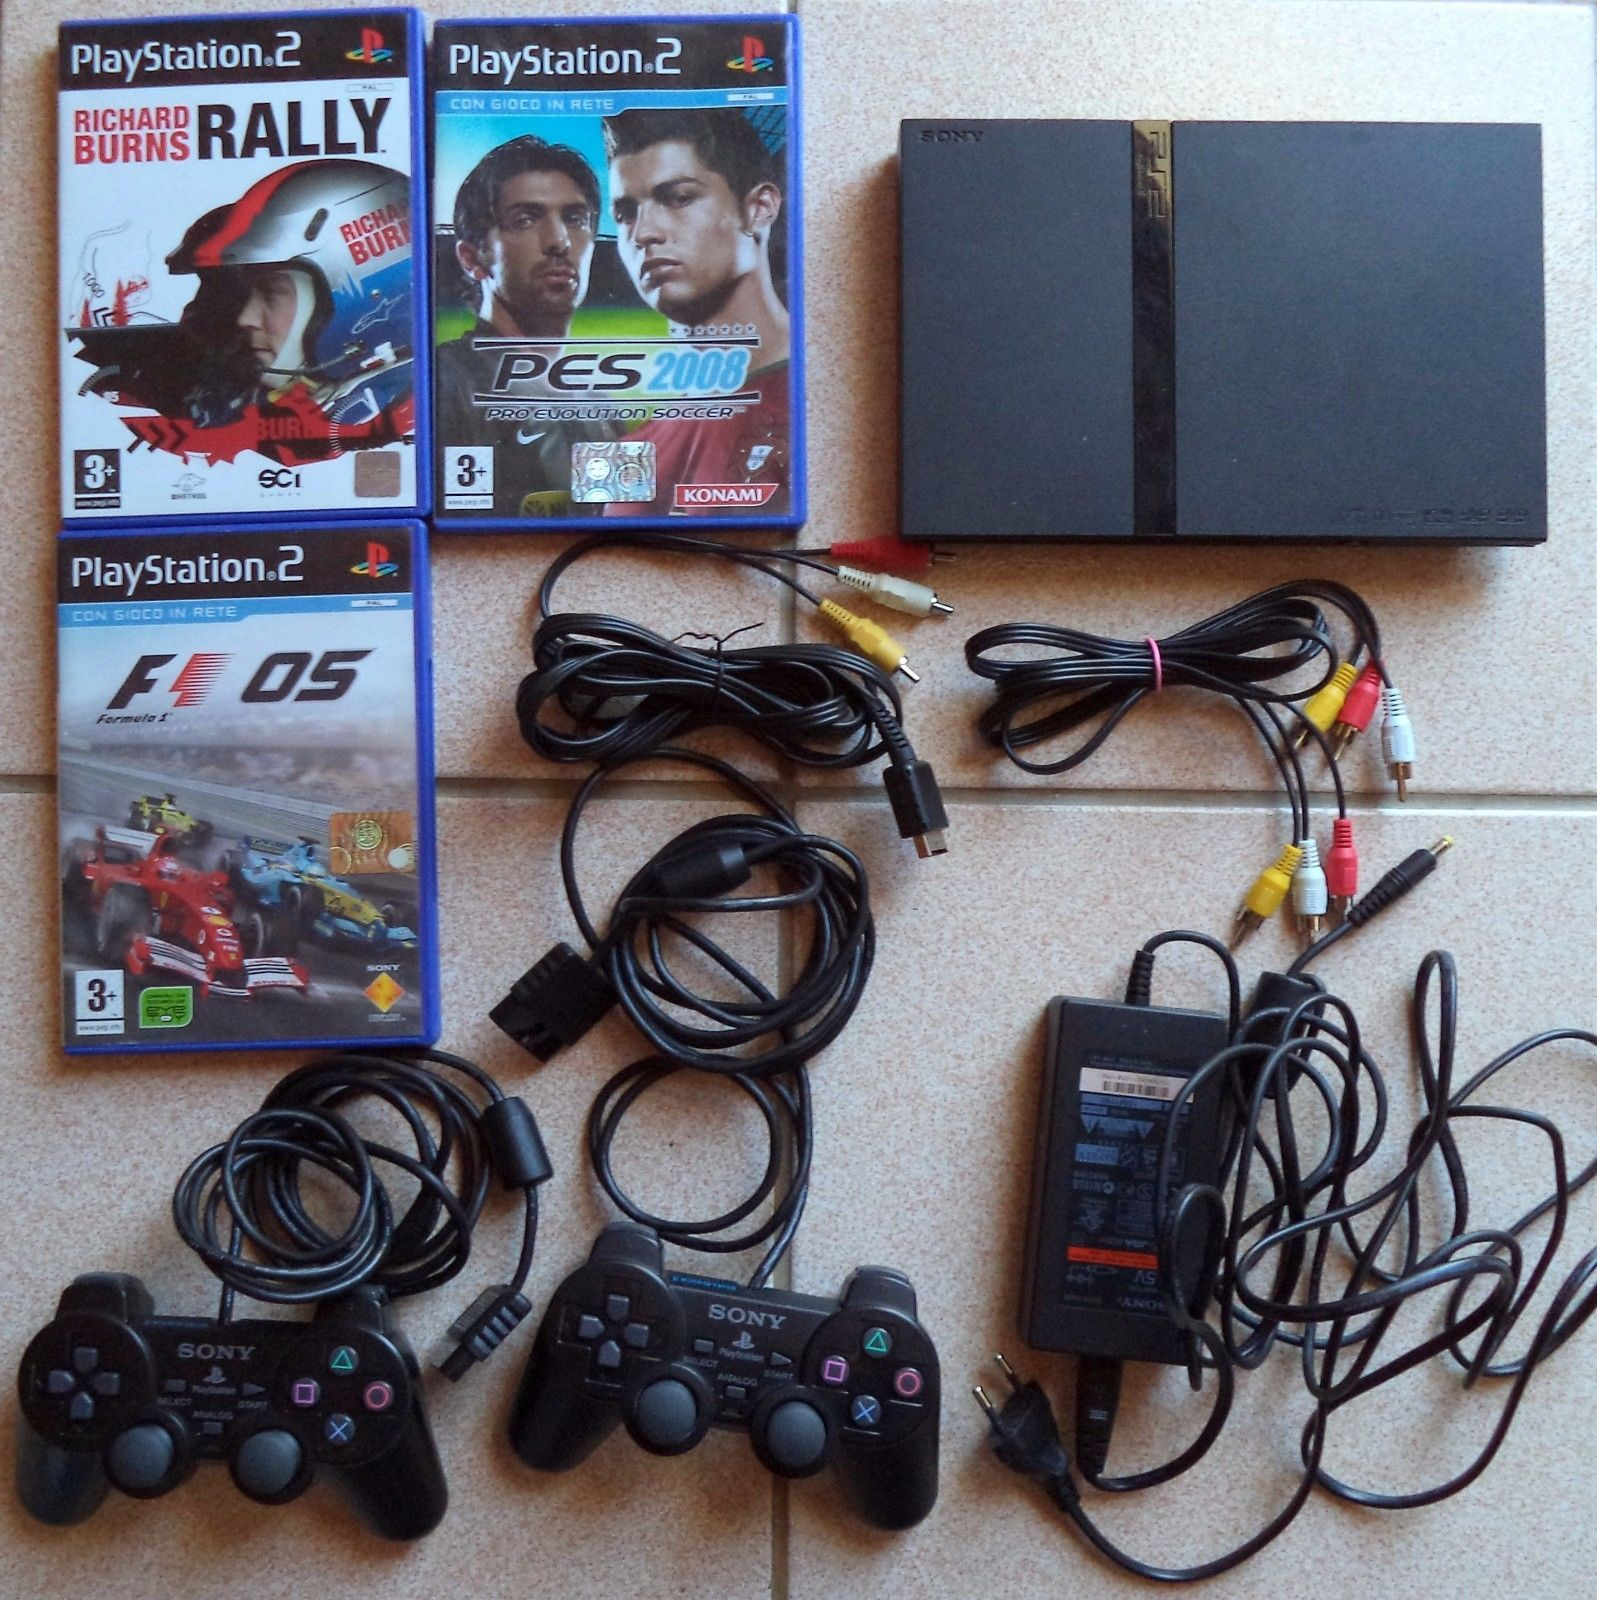 Sony Slim Playstation 2 Ps2 Bundle Controllers Dualshock 3 Games Controller 8 Mb Tested